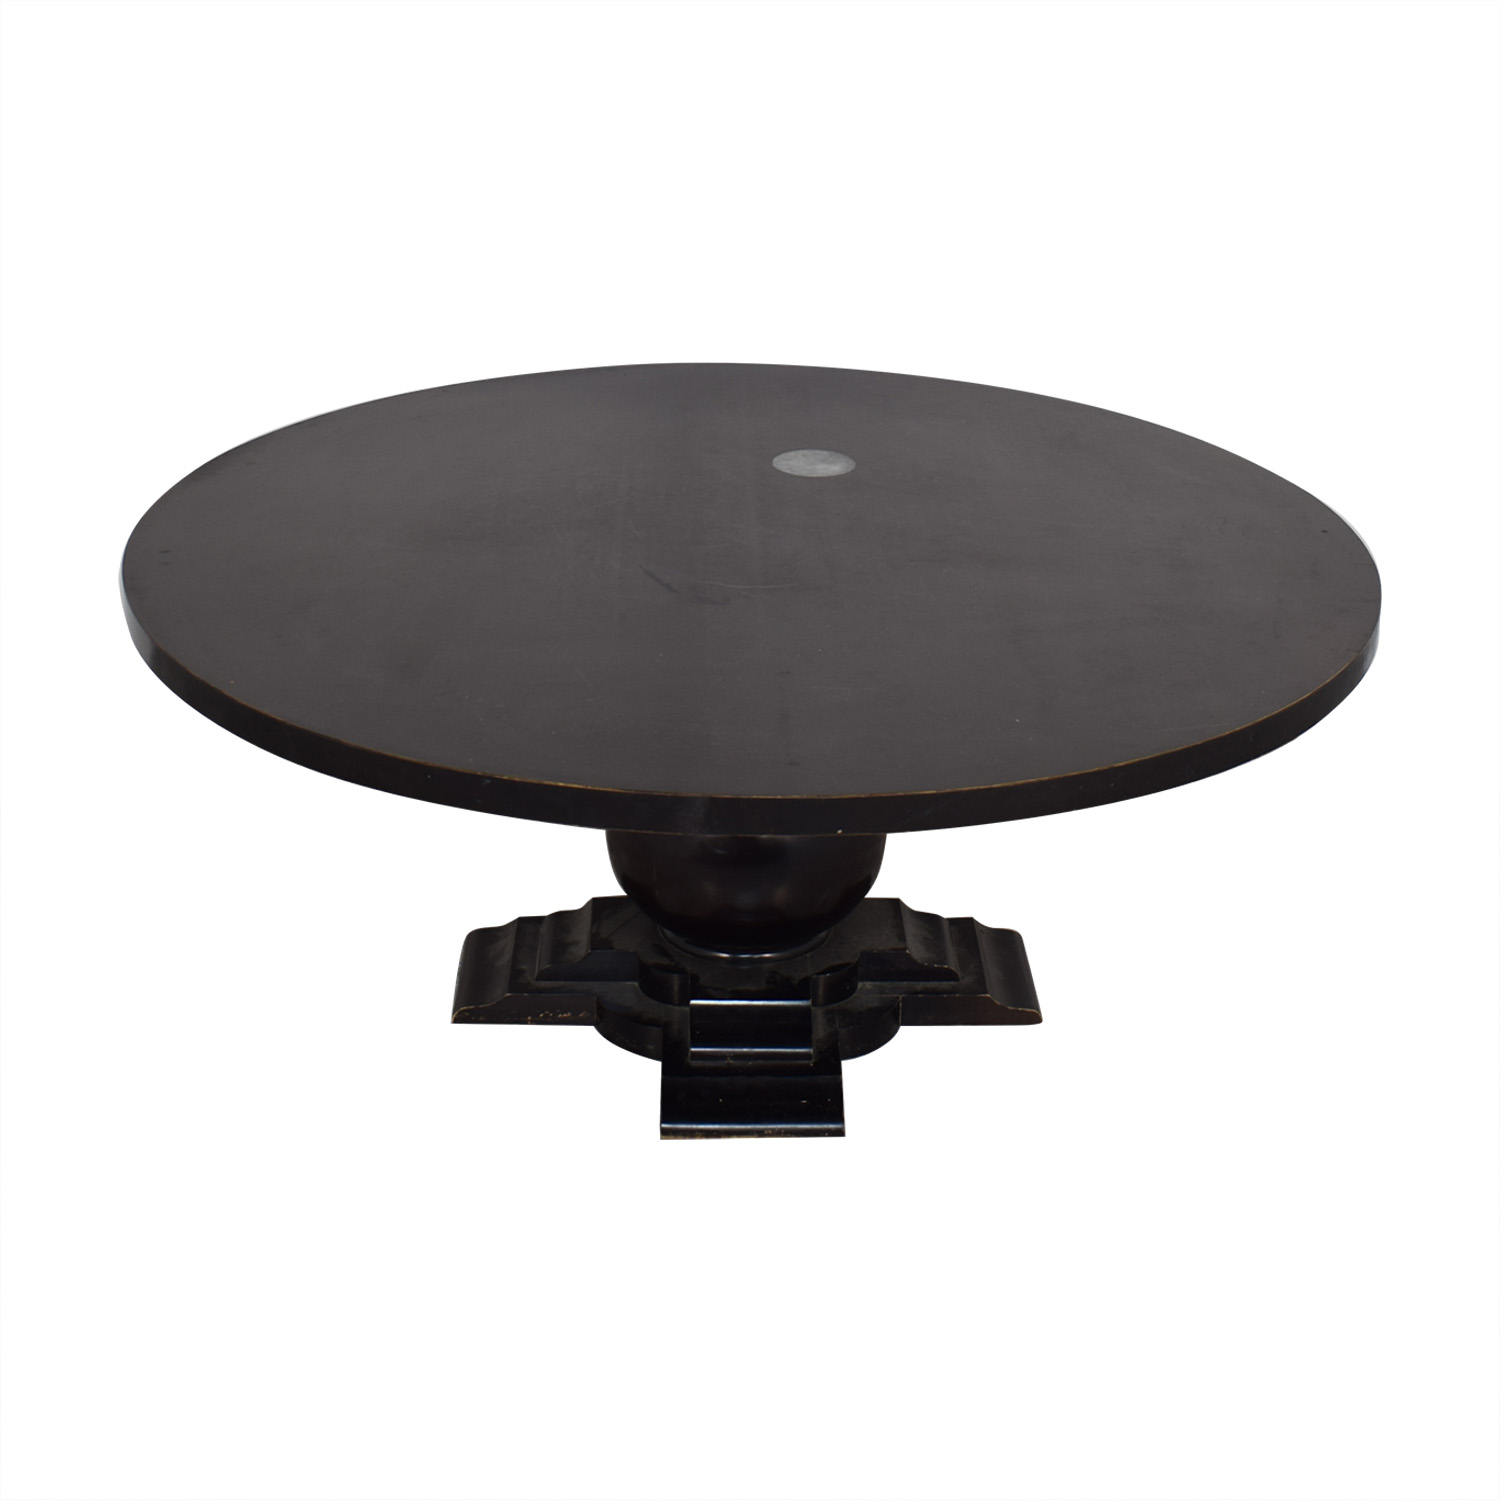 Crate & Barrel Crate & Barrel Round Dinner Table price